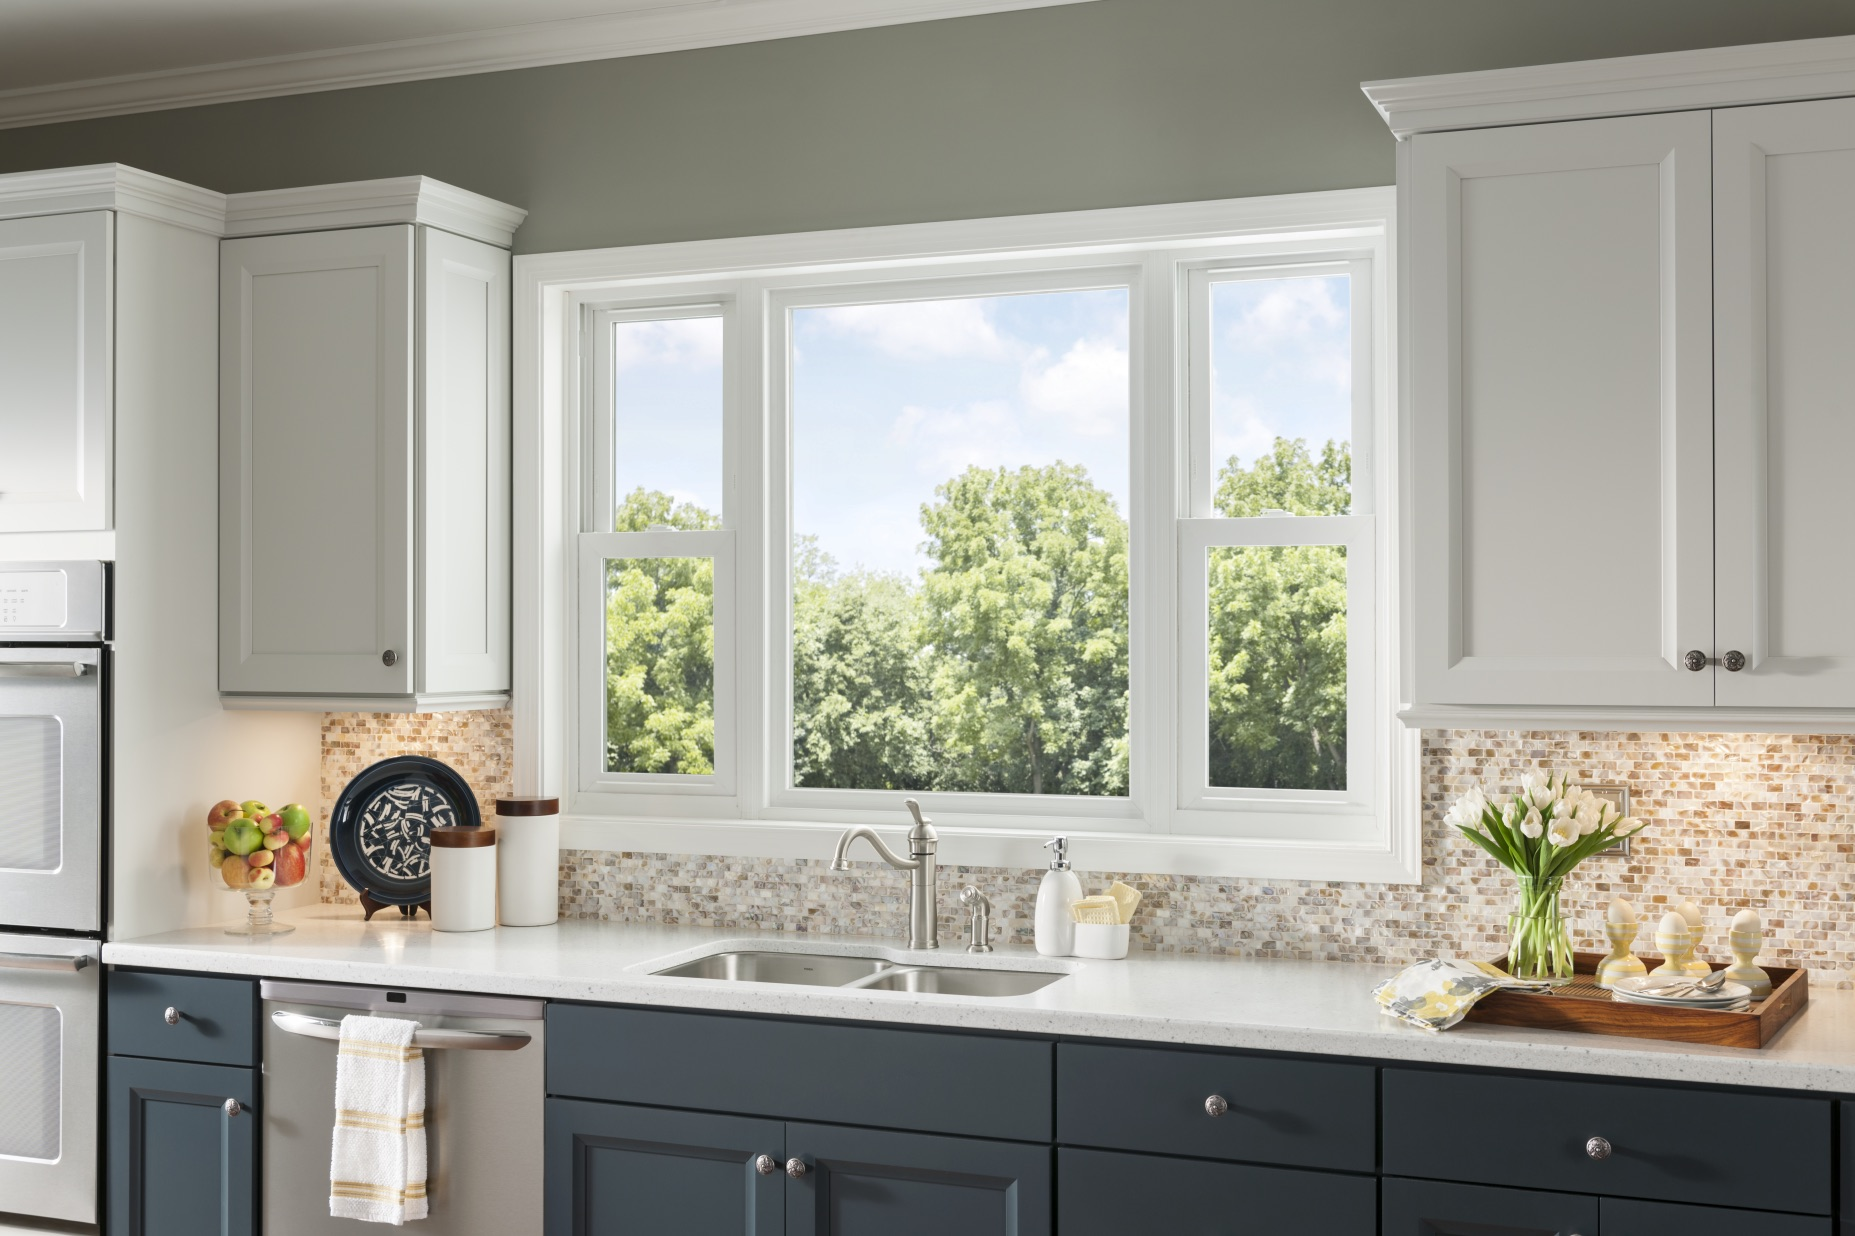 Vantagepointe 6100 double hung window vantagepointe for Simonton windows